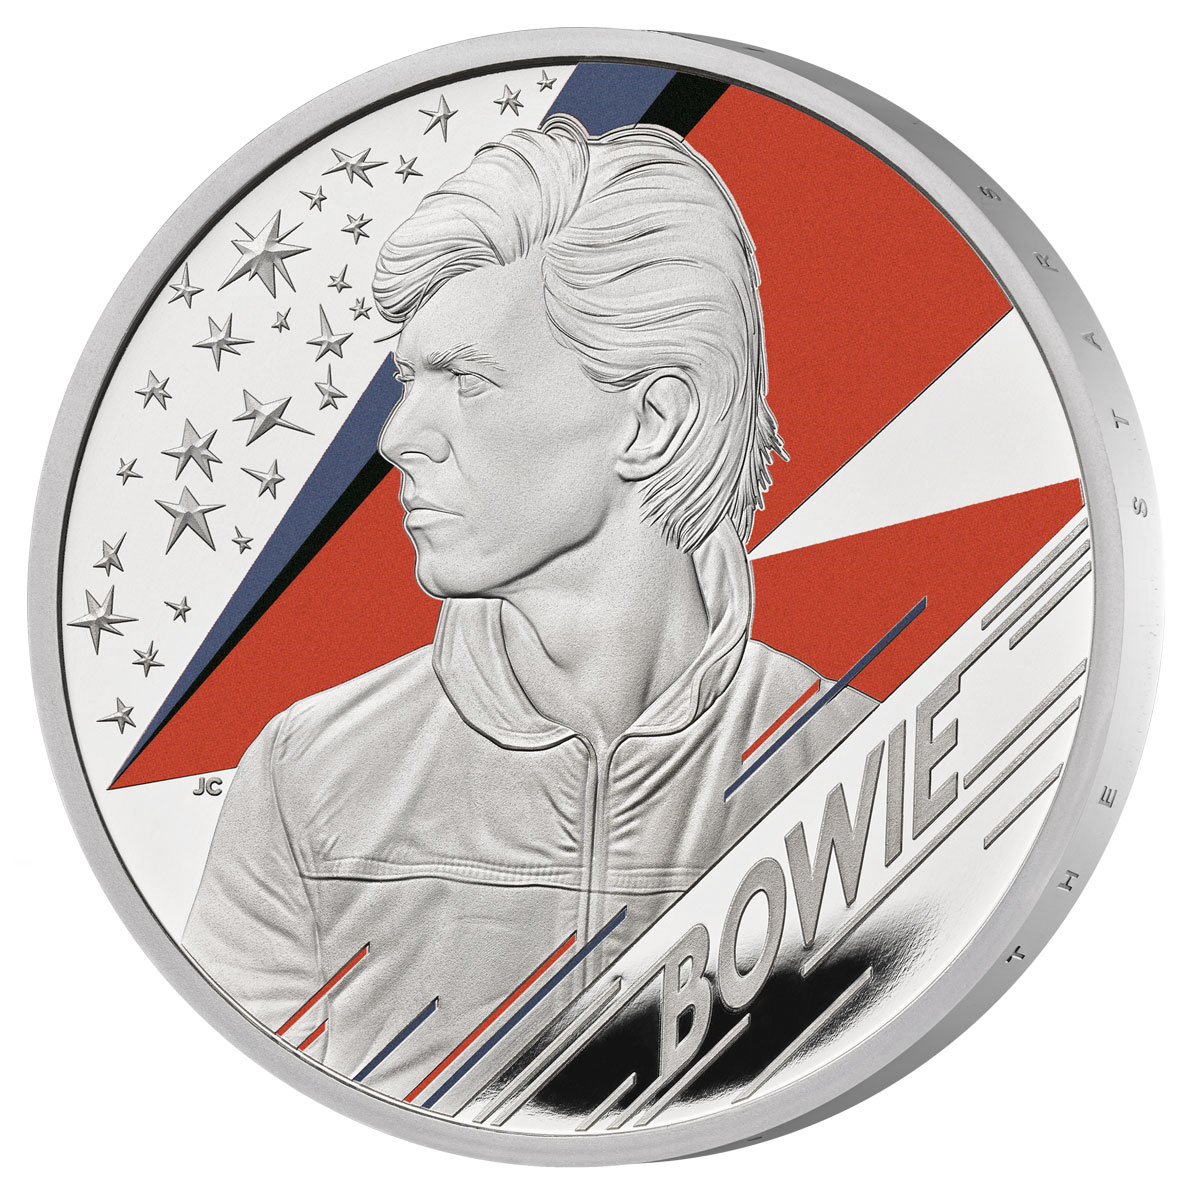 2020 Great Britain Legends of British Music - David Bowie 1 oz Silver Colorized Proof £2 Coin GEM Proof OGP